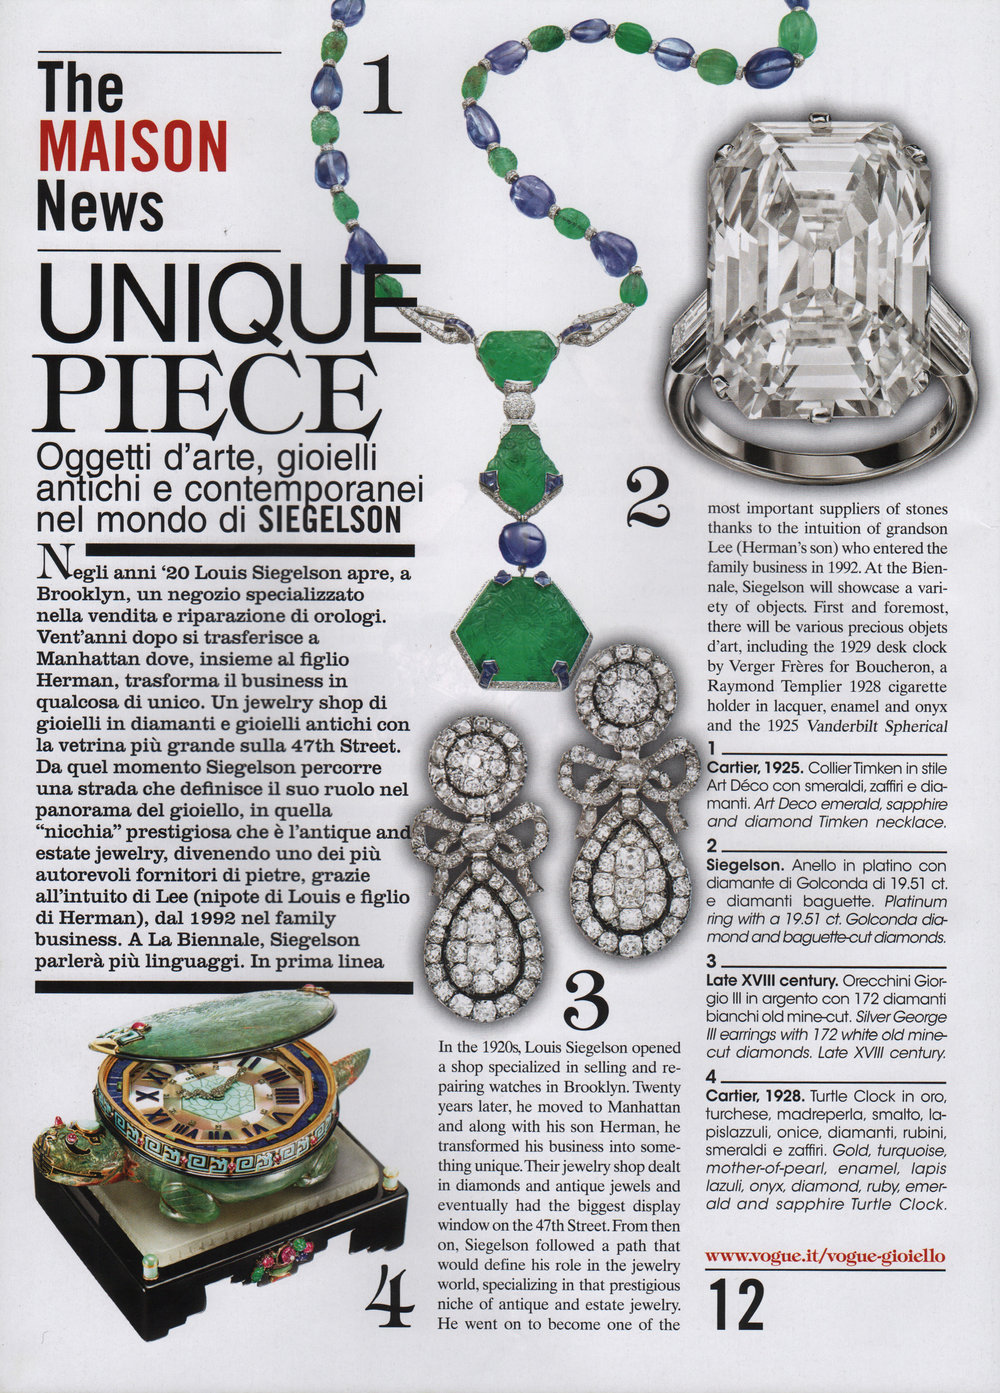 Featured pieces: The Timken Necklace: An Art Deco Emerald, Sapphire, and Diamond Pendant Necklace by Cartier, Paris, 1925; Pair of Golconda Diamond Ring by Siegelson, New York; George III Diamond Ear Pendants, Late Eighteenth Century; Art Deco Tortoise Clock by Cartier, Paris, 1928; Pair of Rose-Colored Spinel and Diamond Ear Pendants by Siegelson, New York; Diamond Pendant by Siegelson, New York; Sapphire and Diamond Feather Brooch by Paul Flato, New York, circa 1940; Art Deco Nephrite, Agate, Gold, Enamel, and Coral Desk Clock by Verger Frères for Boucheron, Paris, 1928; Art Deco Silver, Enamel, and Eggshell Lacquer Cigarette Case by Raymond Templier, Paris, 1928; Art Moderne Platinum and Diamond Bangle by Cartier, Paris, 1934; Art Deco Platinum, Carved Ruby, and Diamond Necklace by Van Cleef & Arpels, Paris, 1929